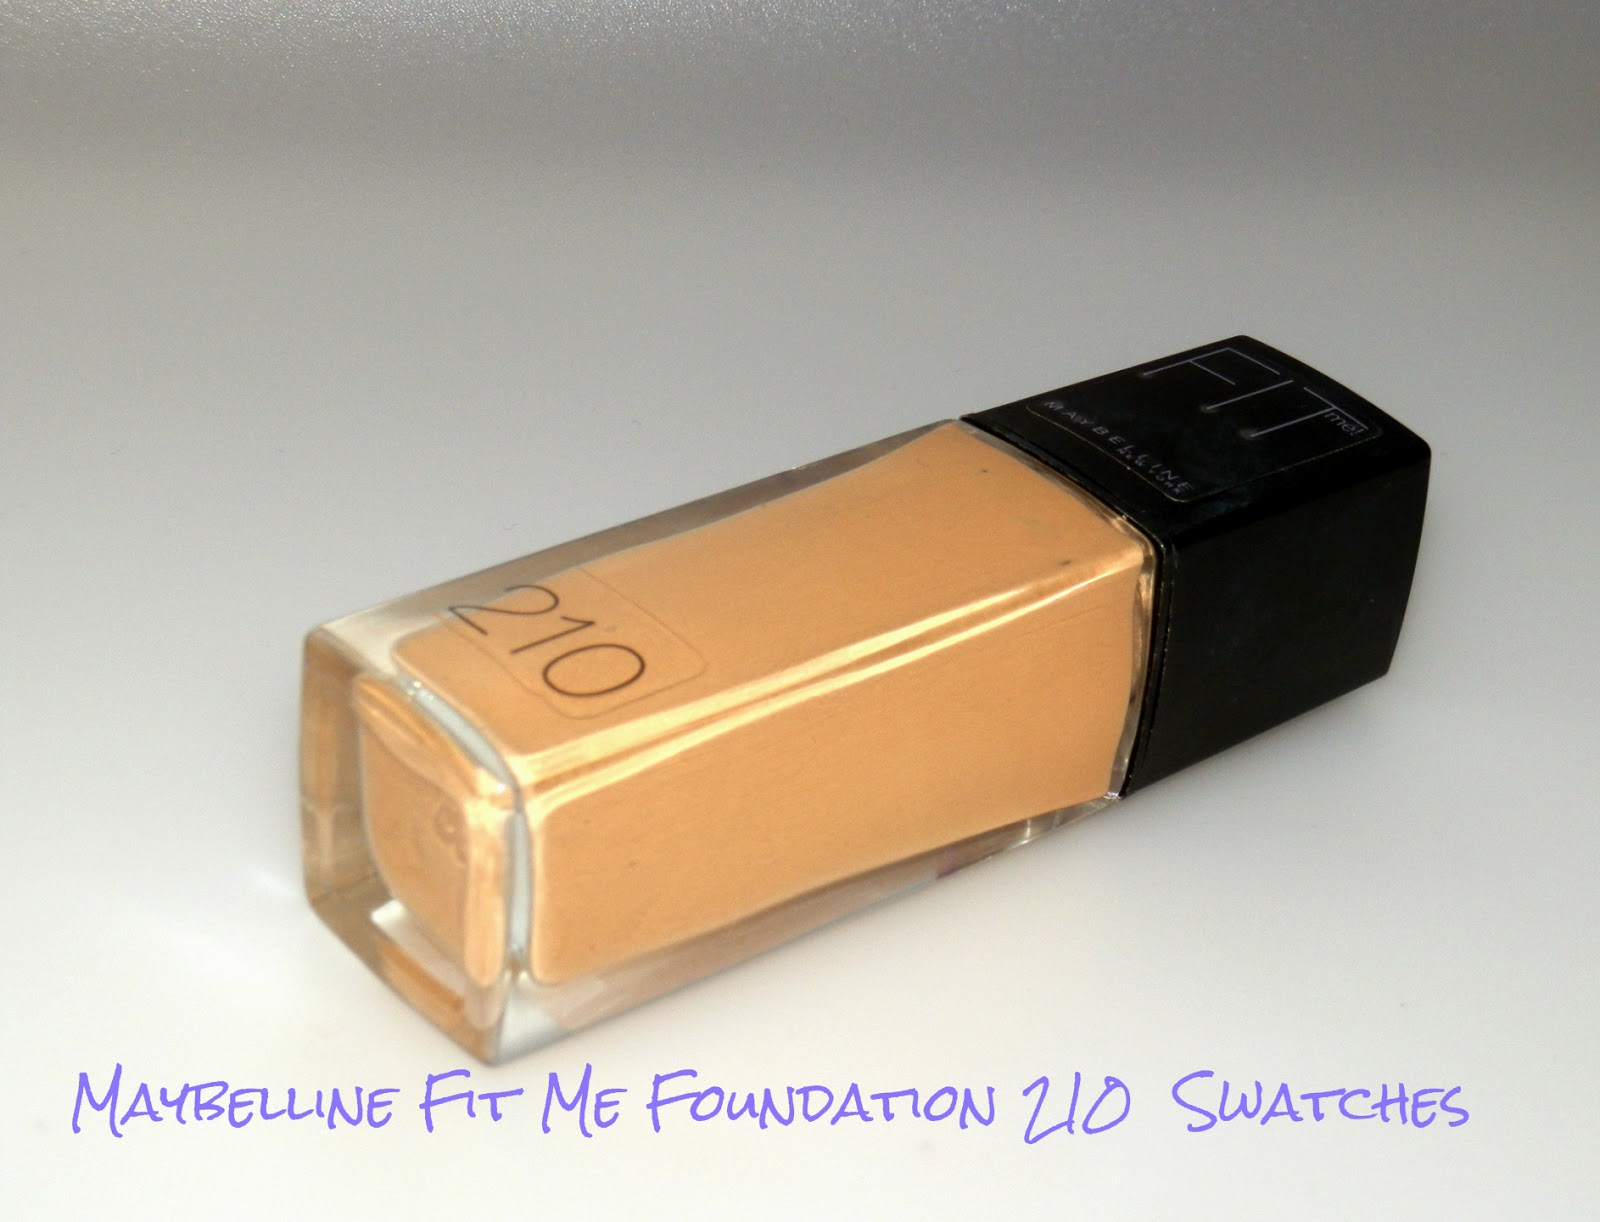 Maybelline Fit Me Foundation 210 Reviews